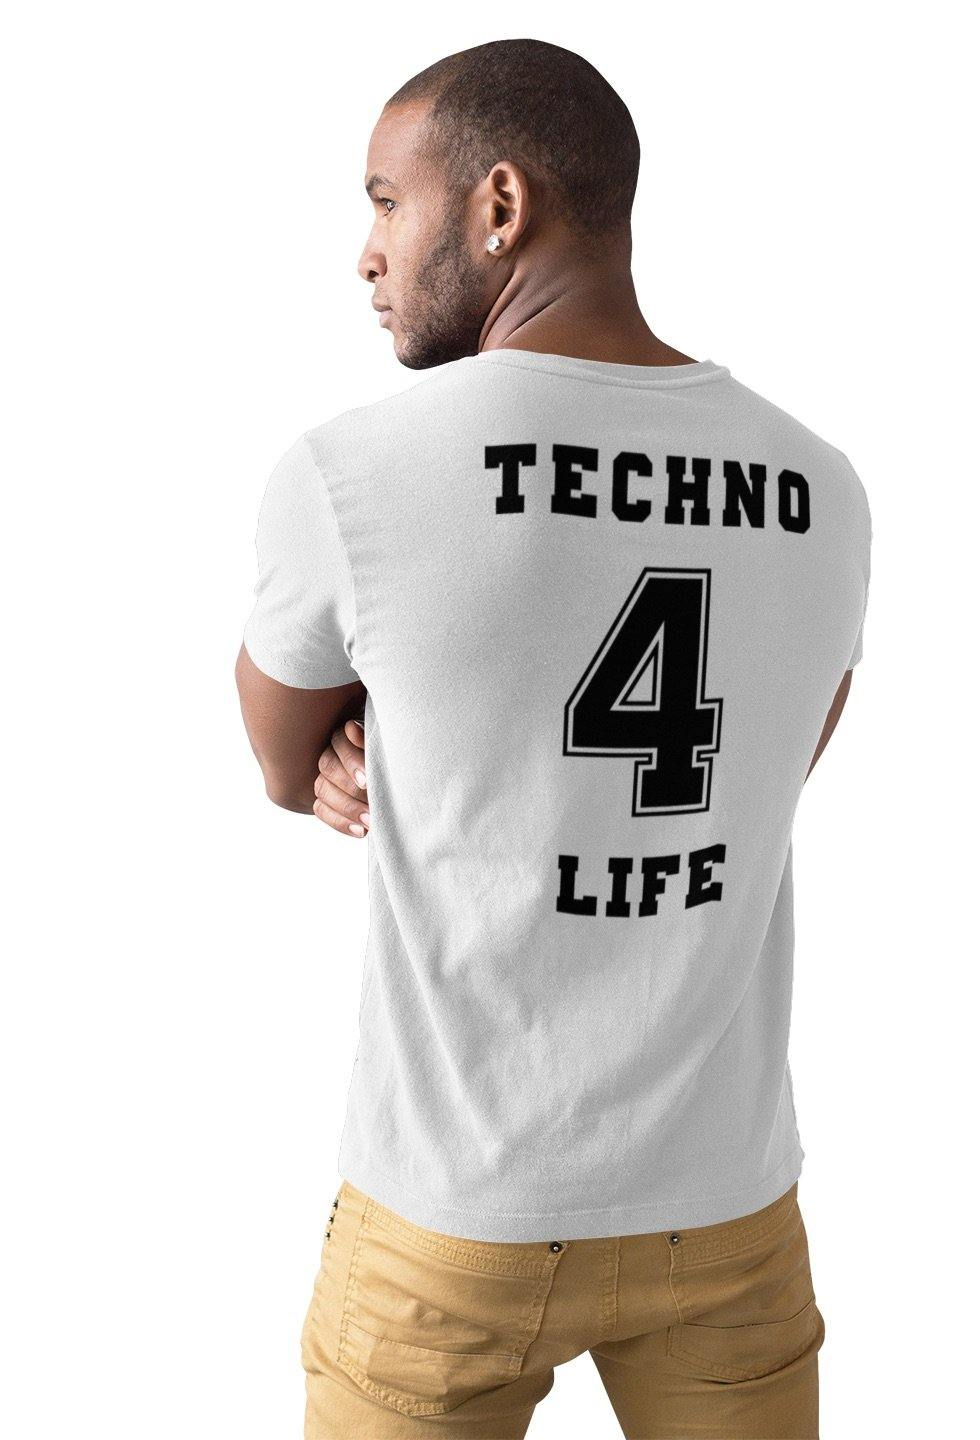 Softstyle Unisex T-Shirt Techno 4 Life